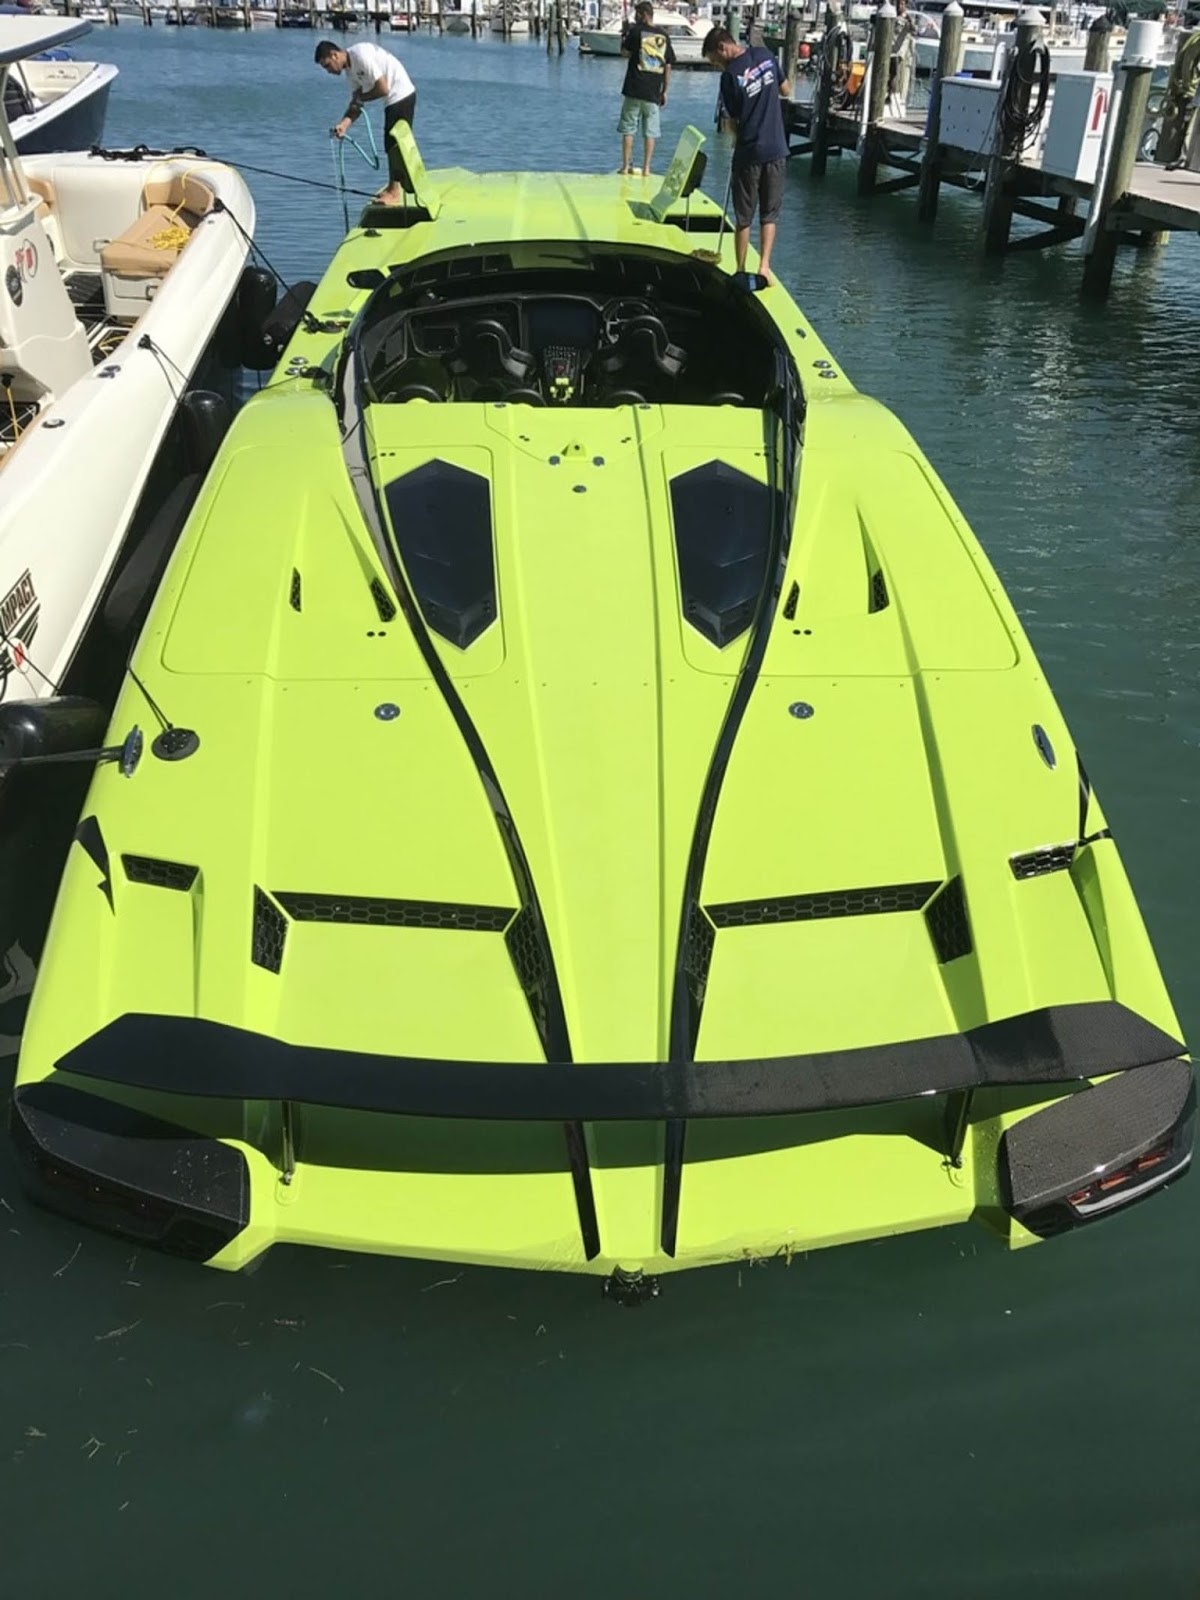 Buy This Lamborghini Aventador Sv Roadster Get A Matching Speedboat W Videos Carscoops